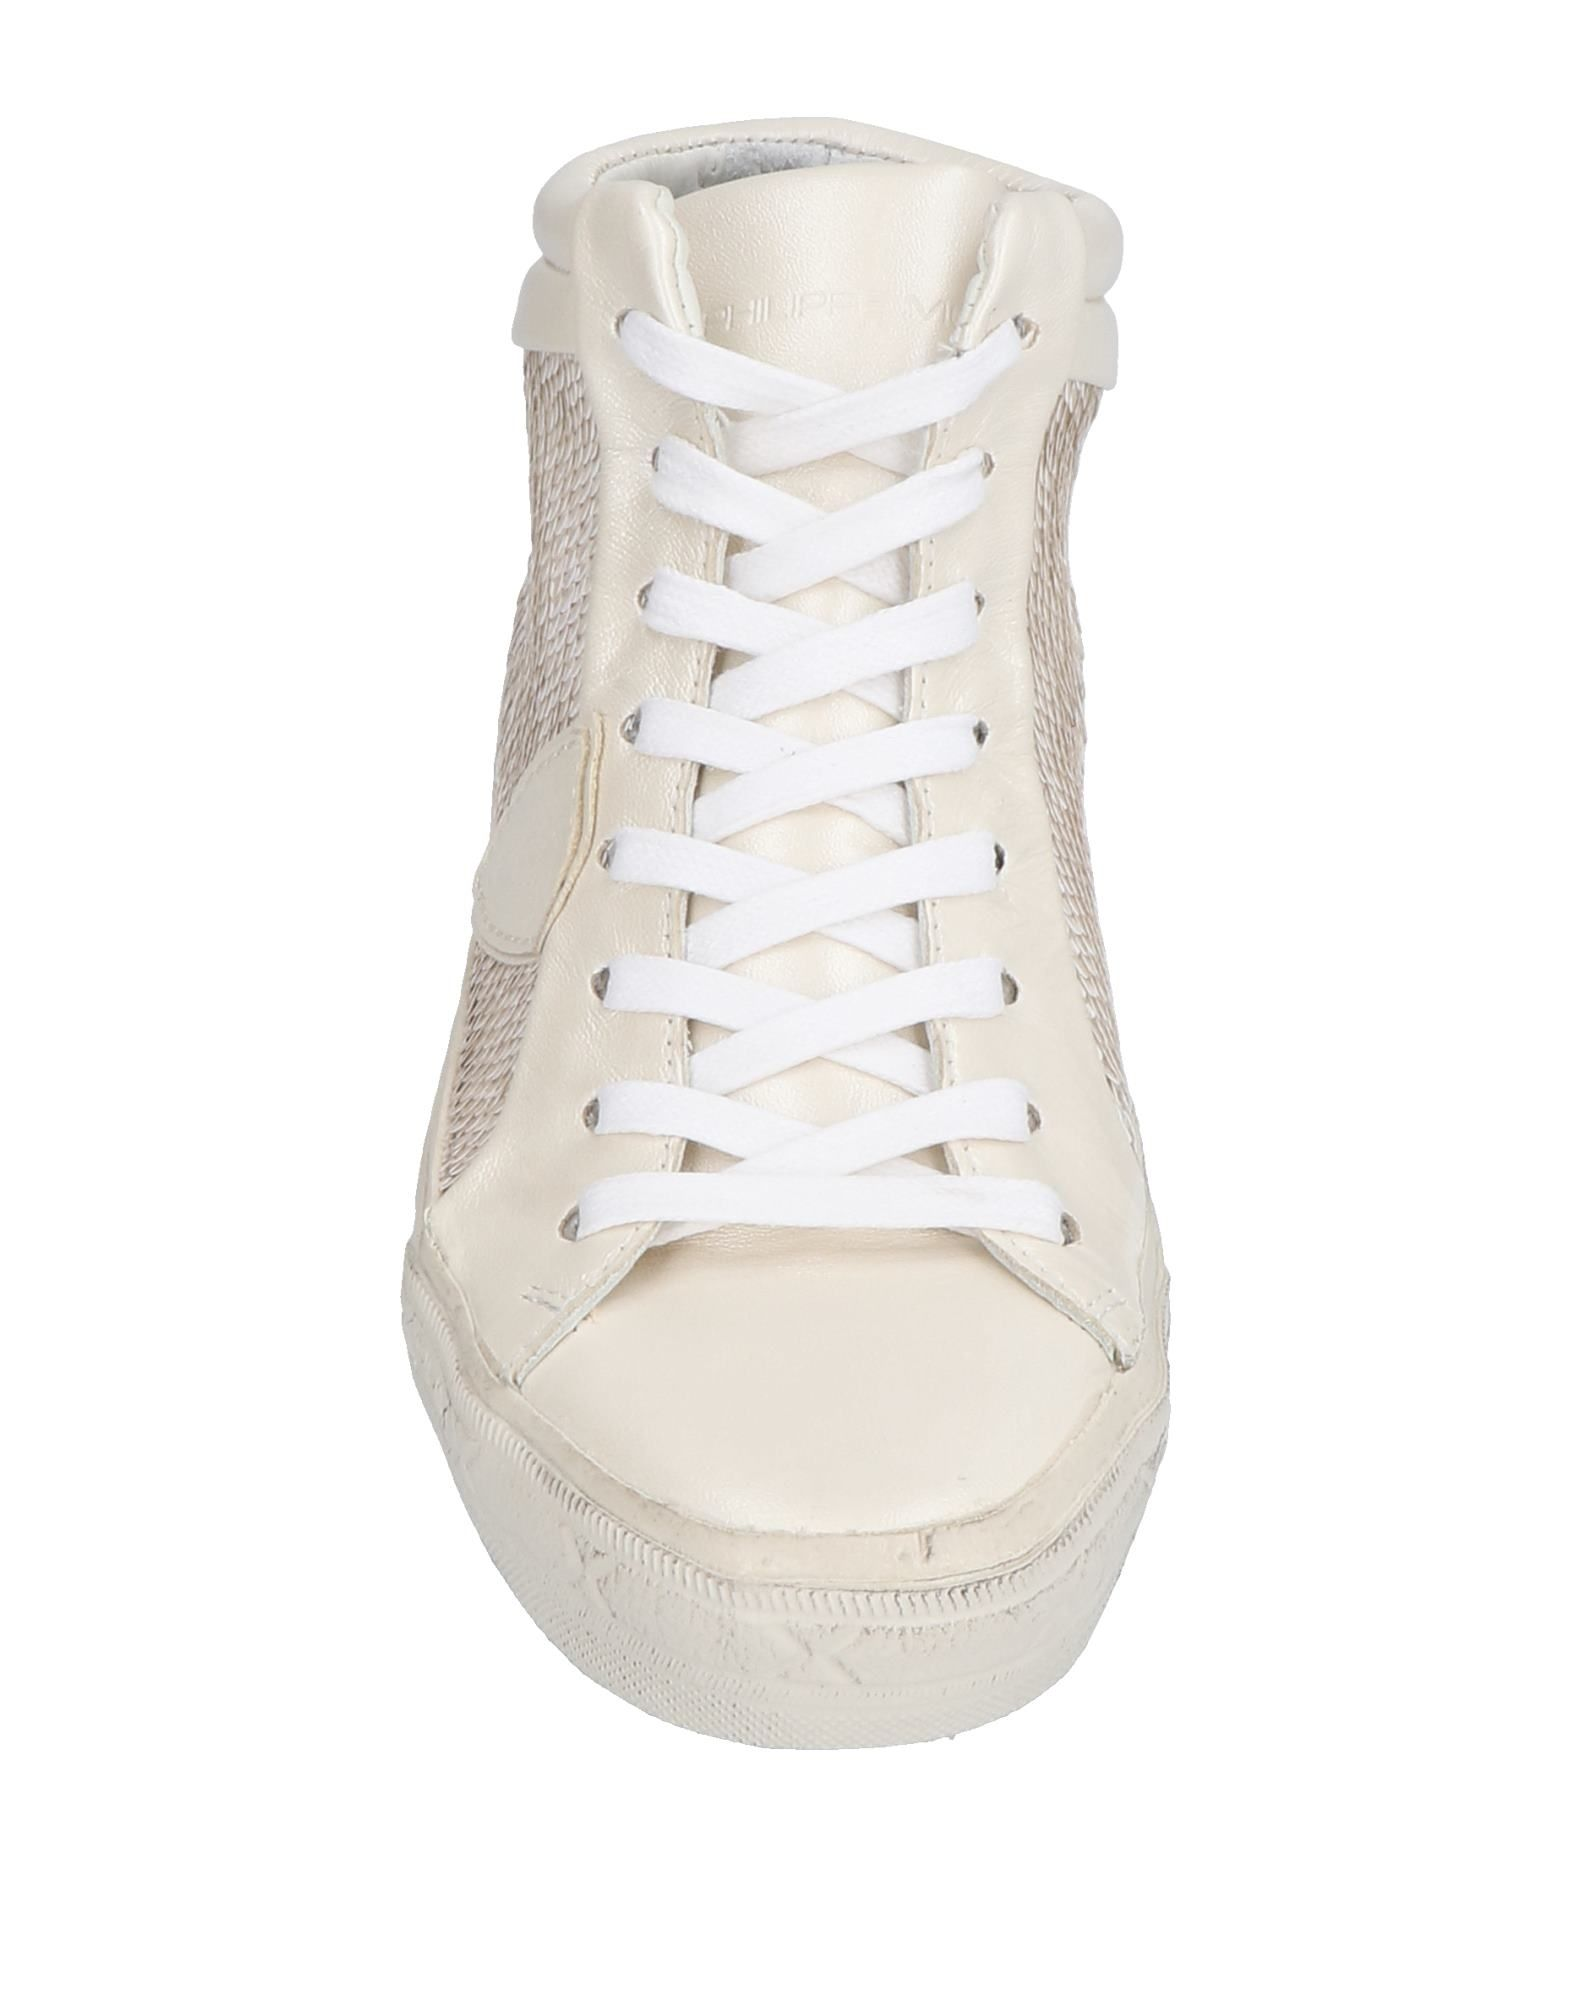 Philippe Model Sneakers strapazierfähige Damen  11480195GSGut aussehende strapazierfähige Sneakers Schuhe 353c11